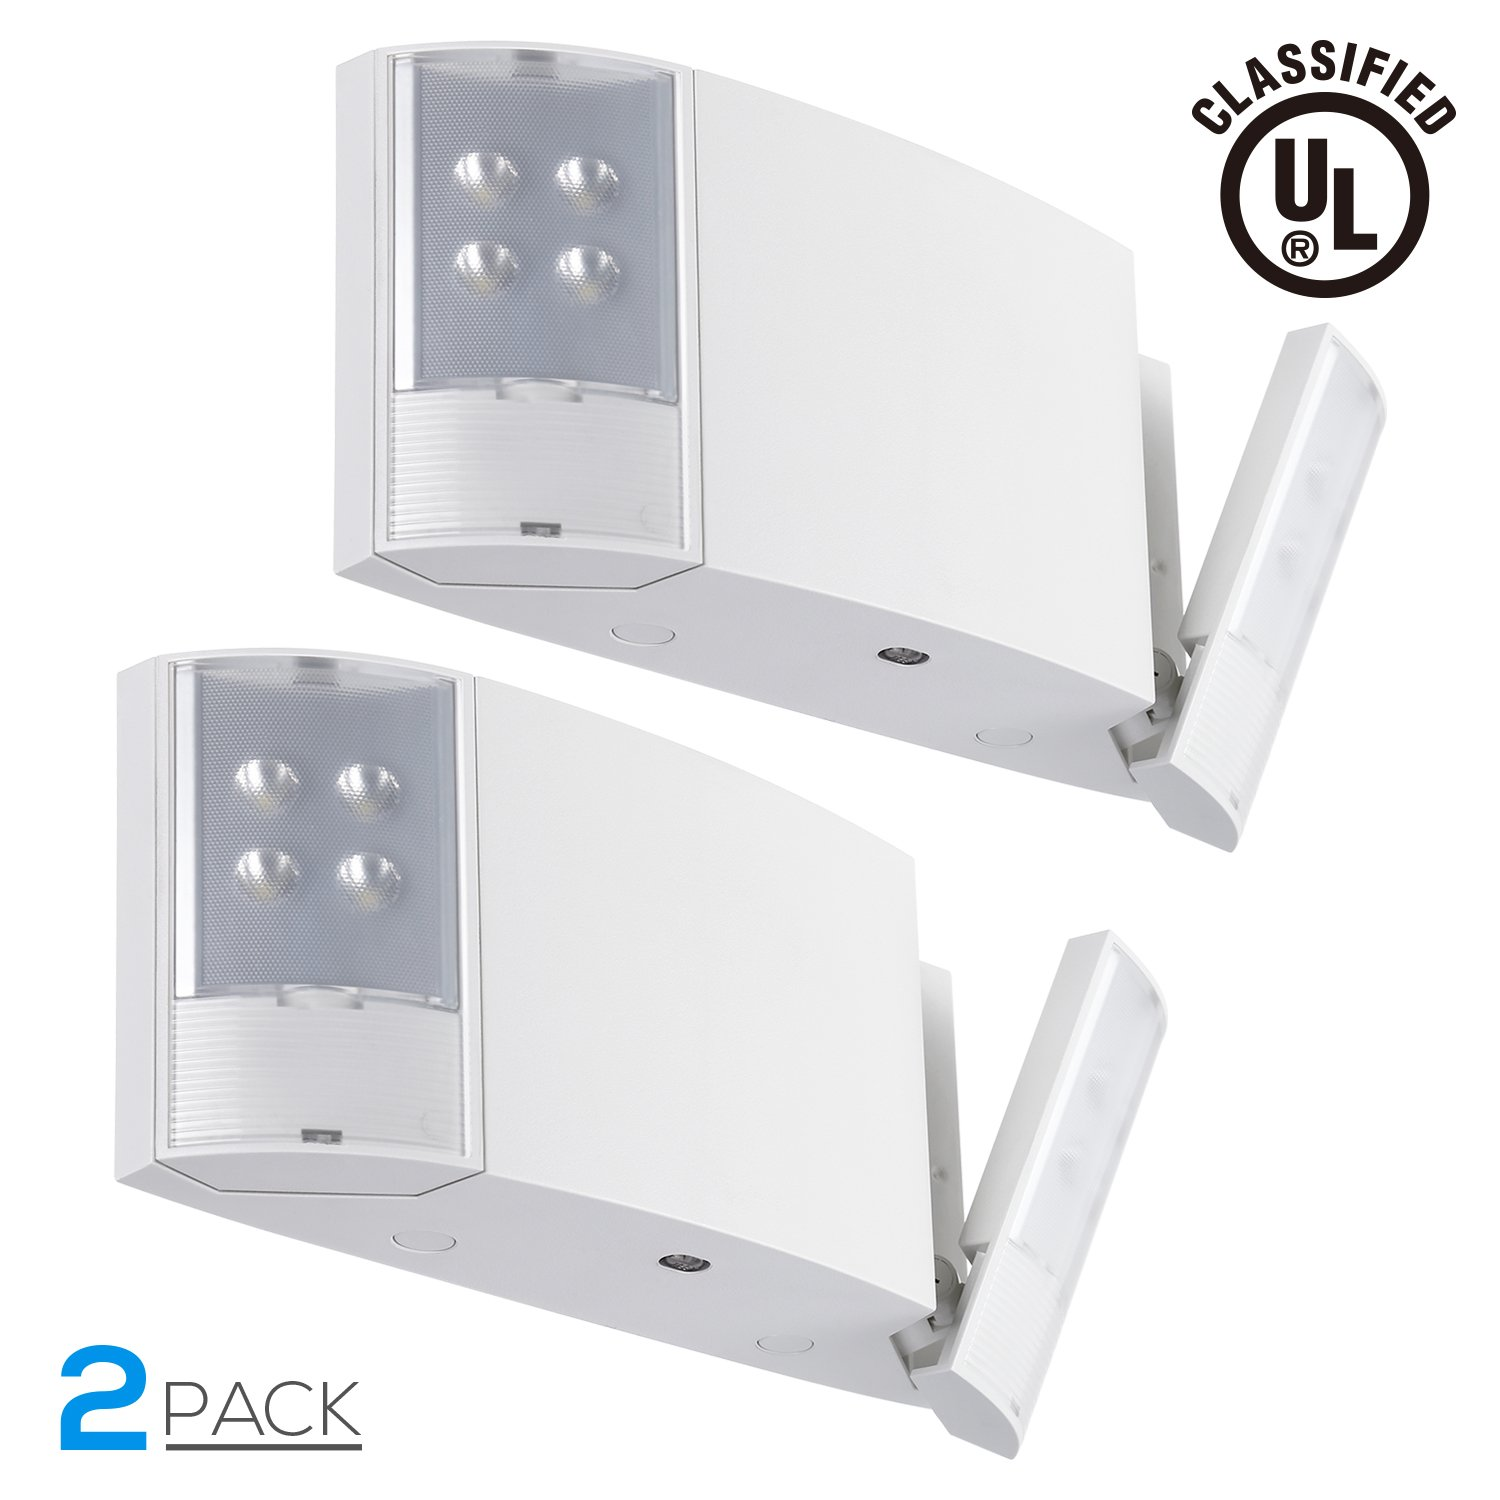 LED Emergency Light with Battery Backup, 1000mAh Rechargeable Battery, Adjustable Dual Heads, UL924 Listed, 120-277V, High Light Output for Office Buildings, Warehouses, Hotels, Pack of 2